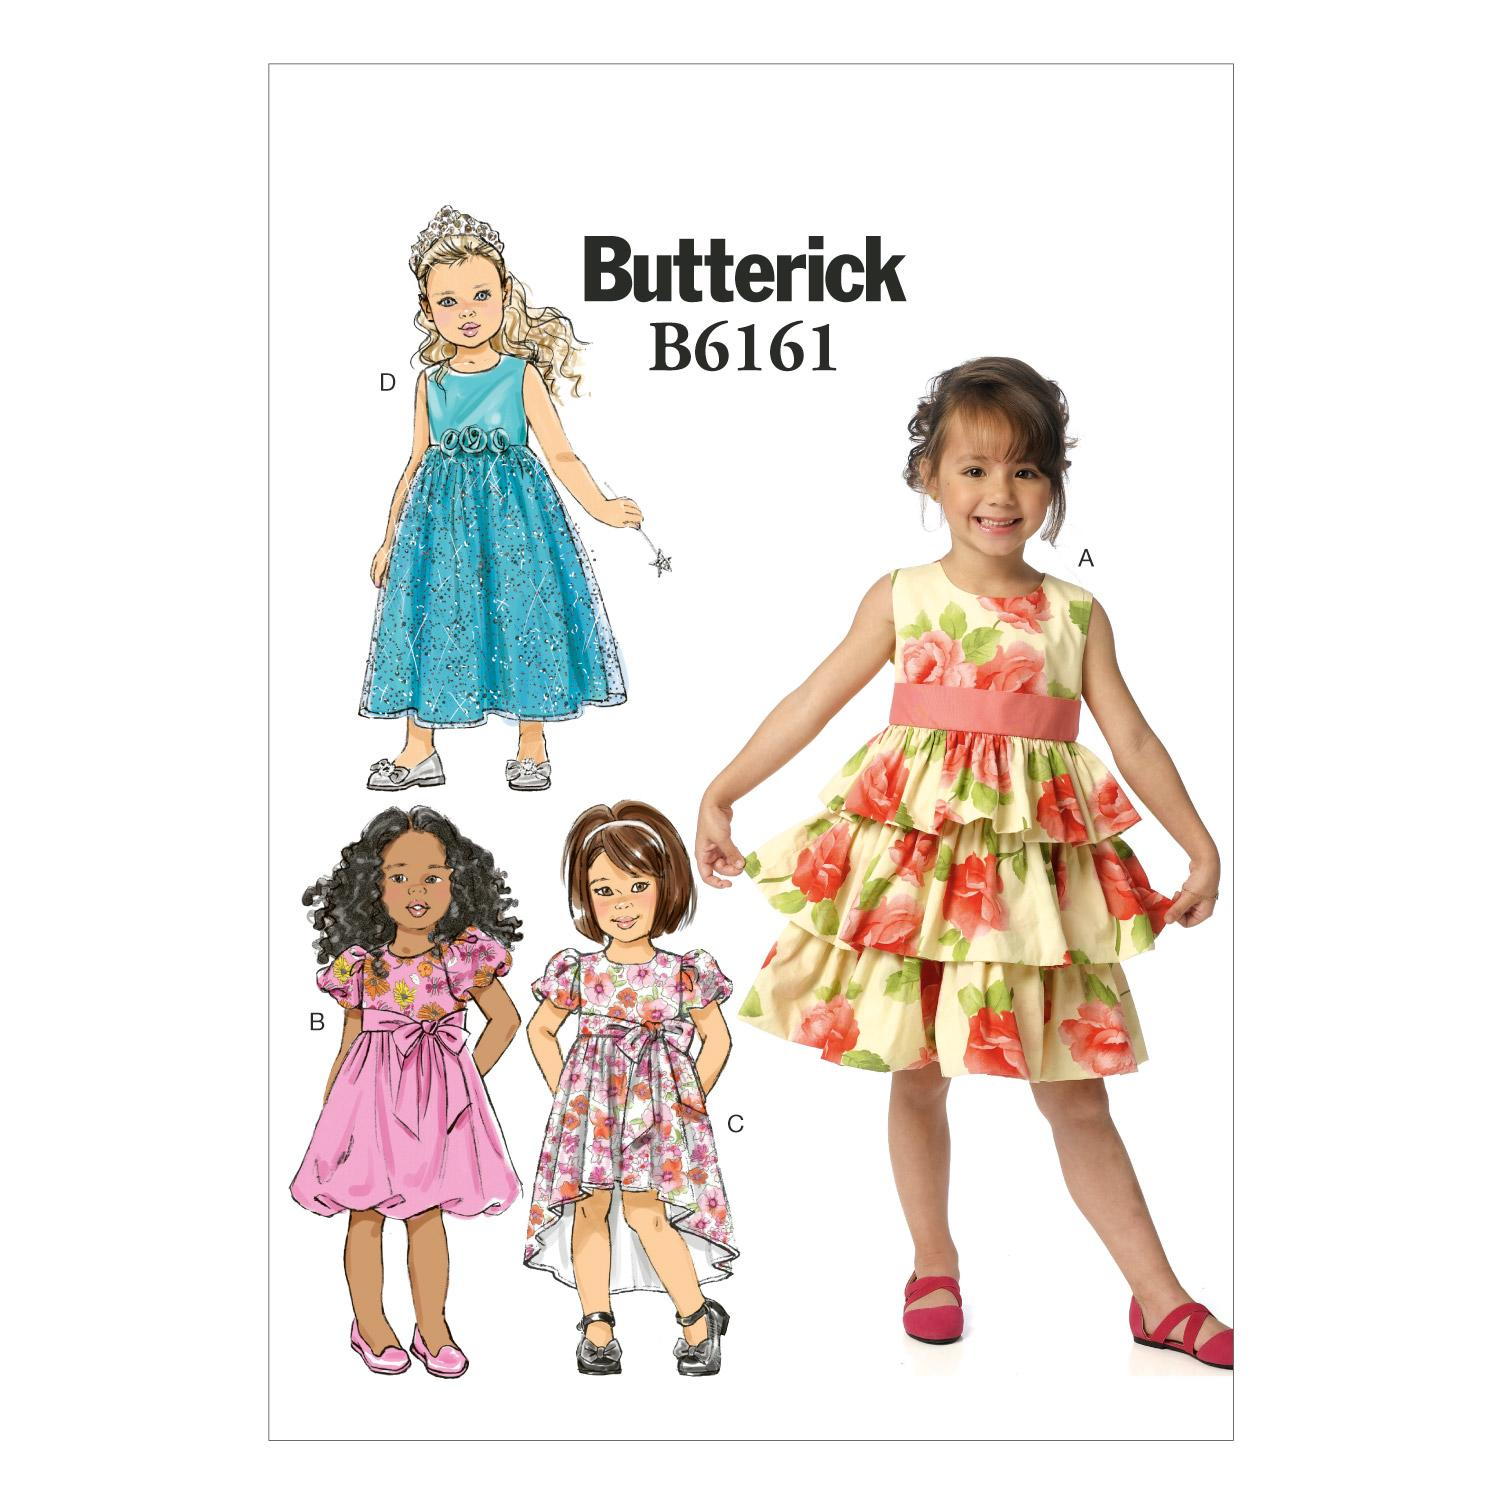 Butterick B6161 Children's/Girls' Dress